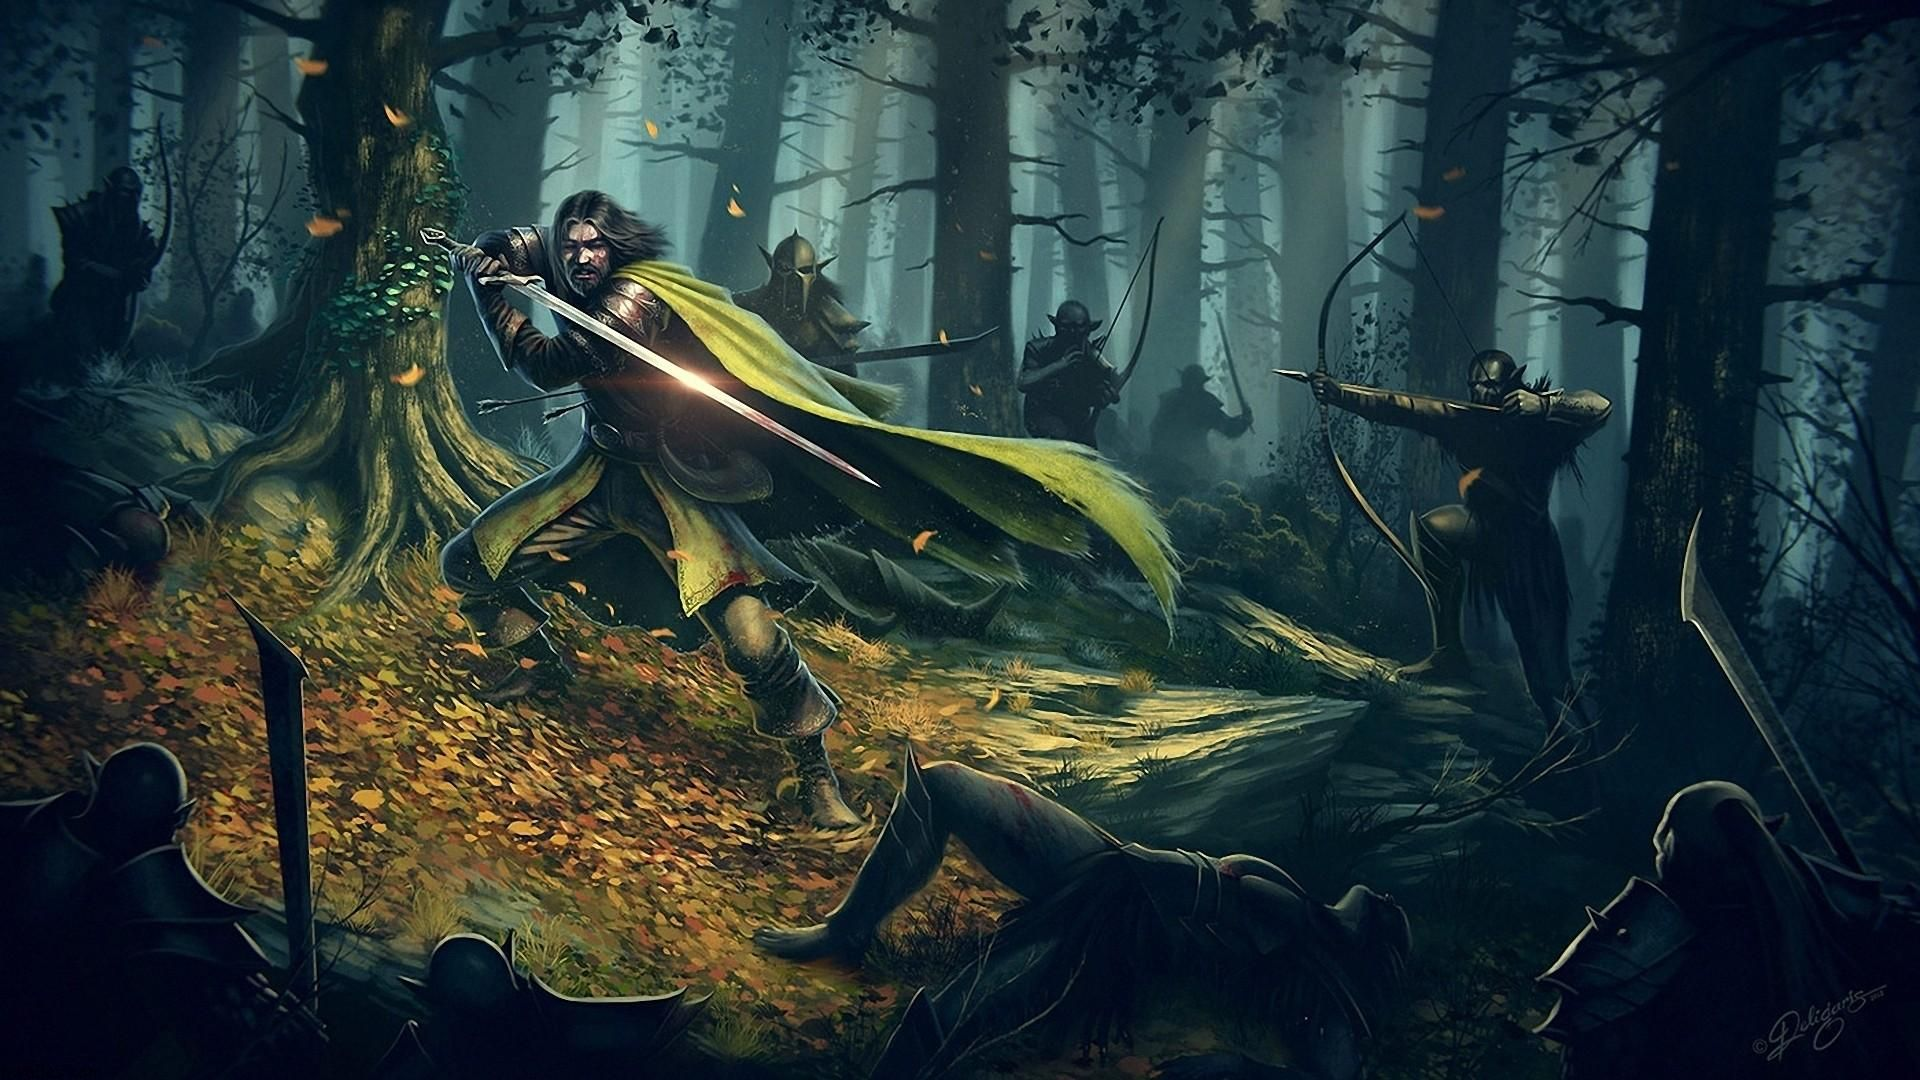 Lord of the Rings - artwork - Google Search | Lord of the Rings ...